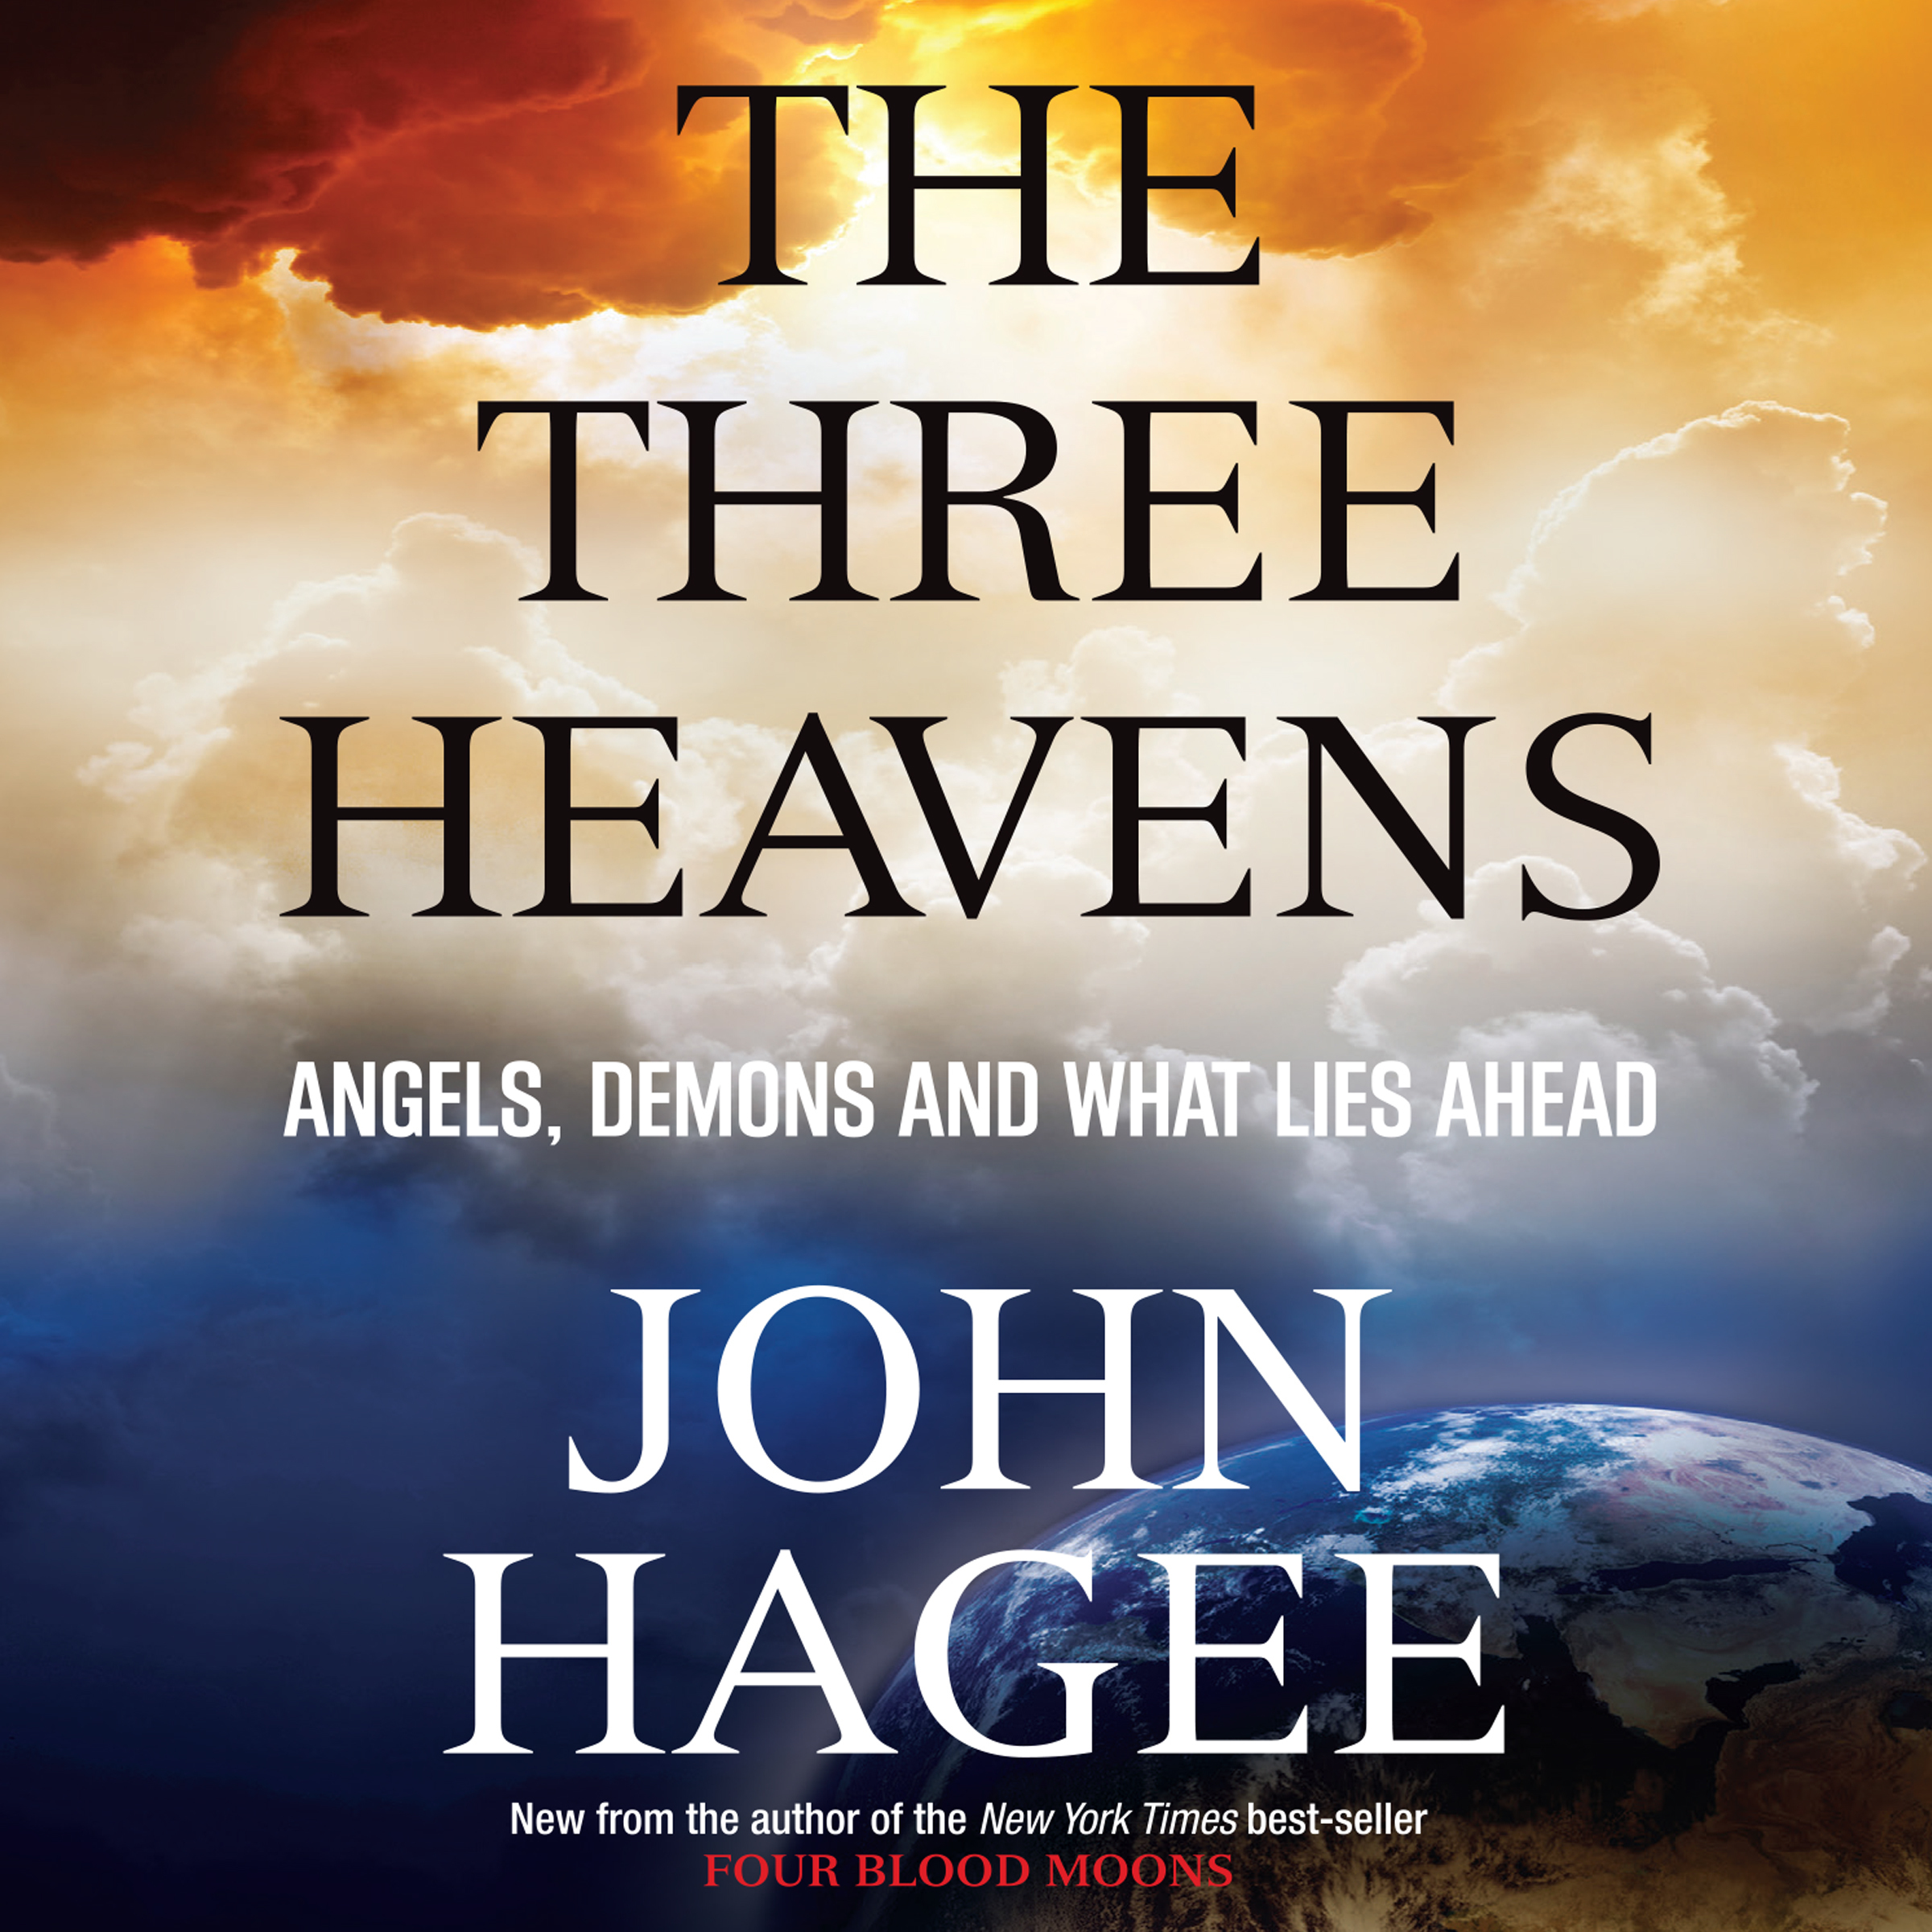 Printable The Three Heavens: Angels, Demons and What Lies Ahead Audiobook Cover Art